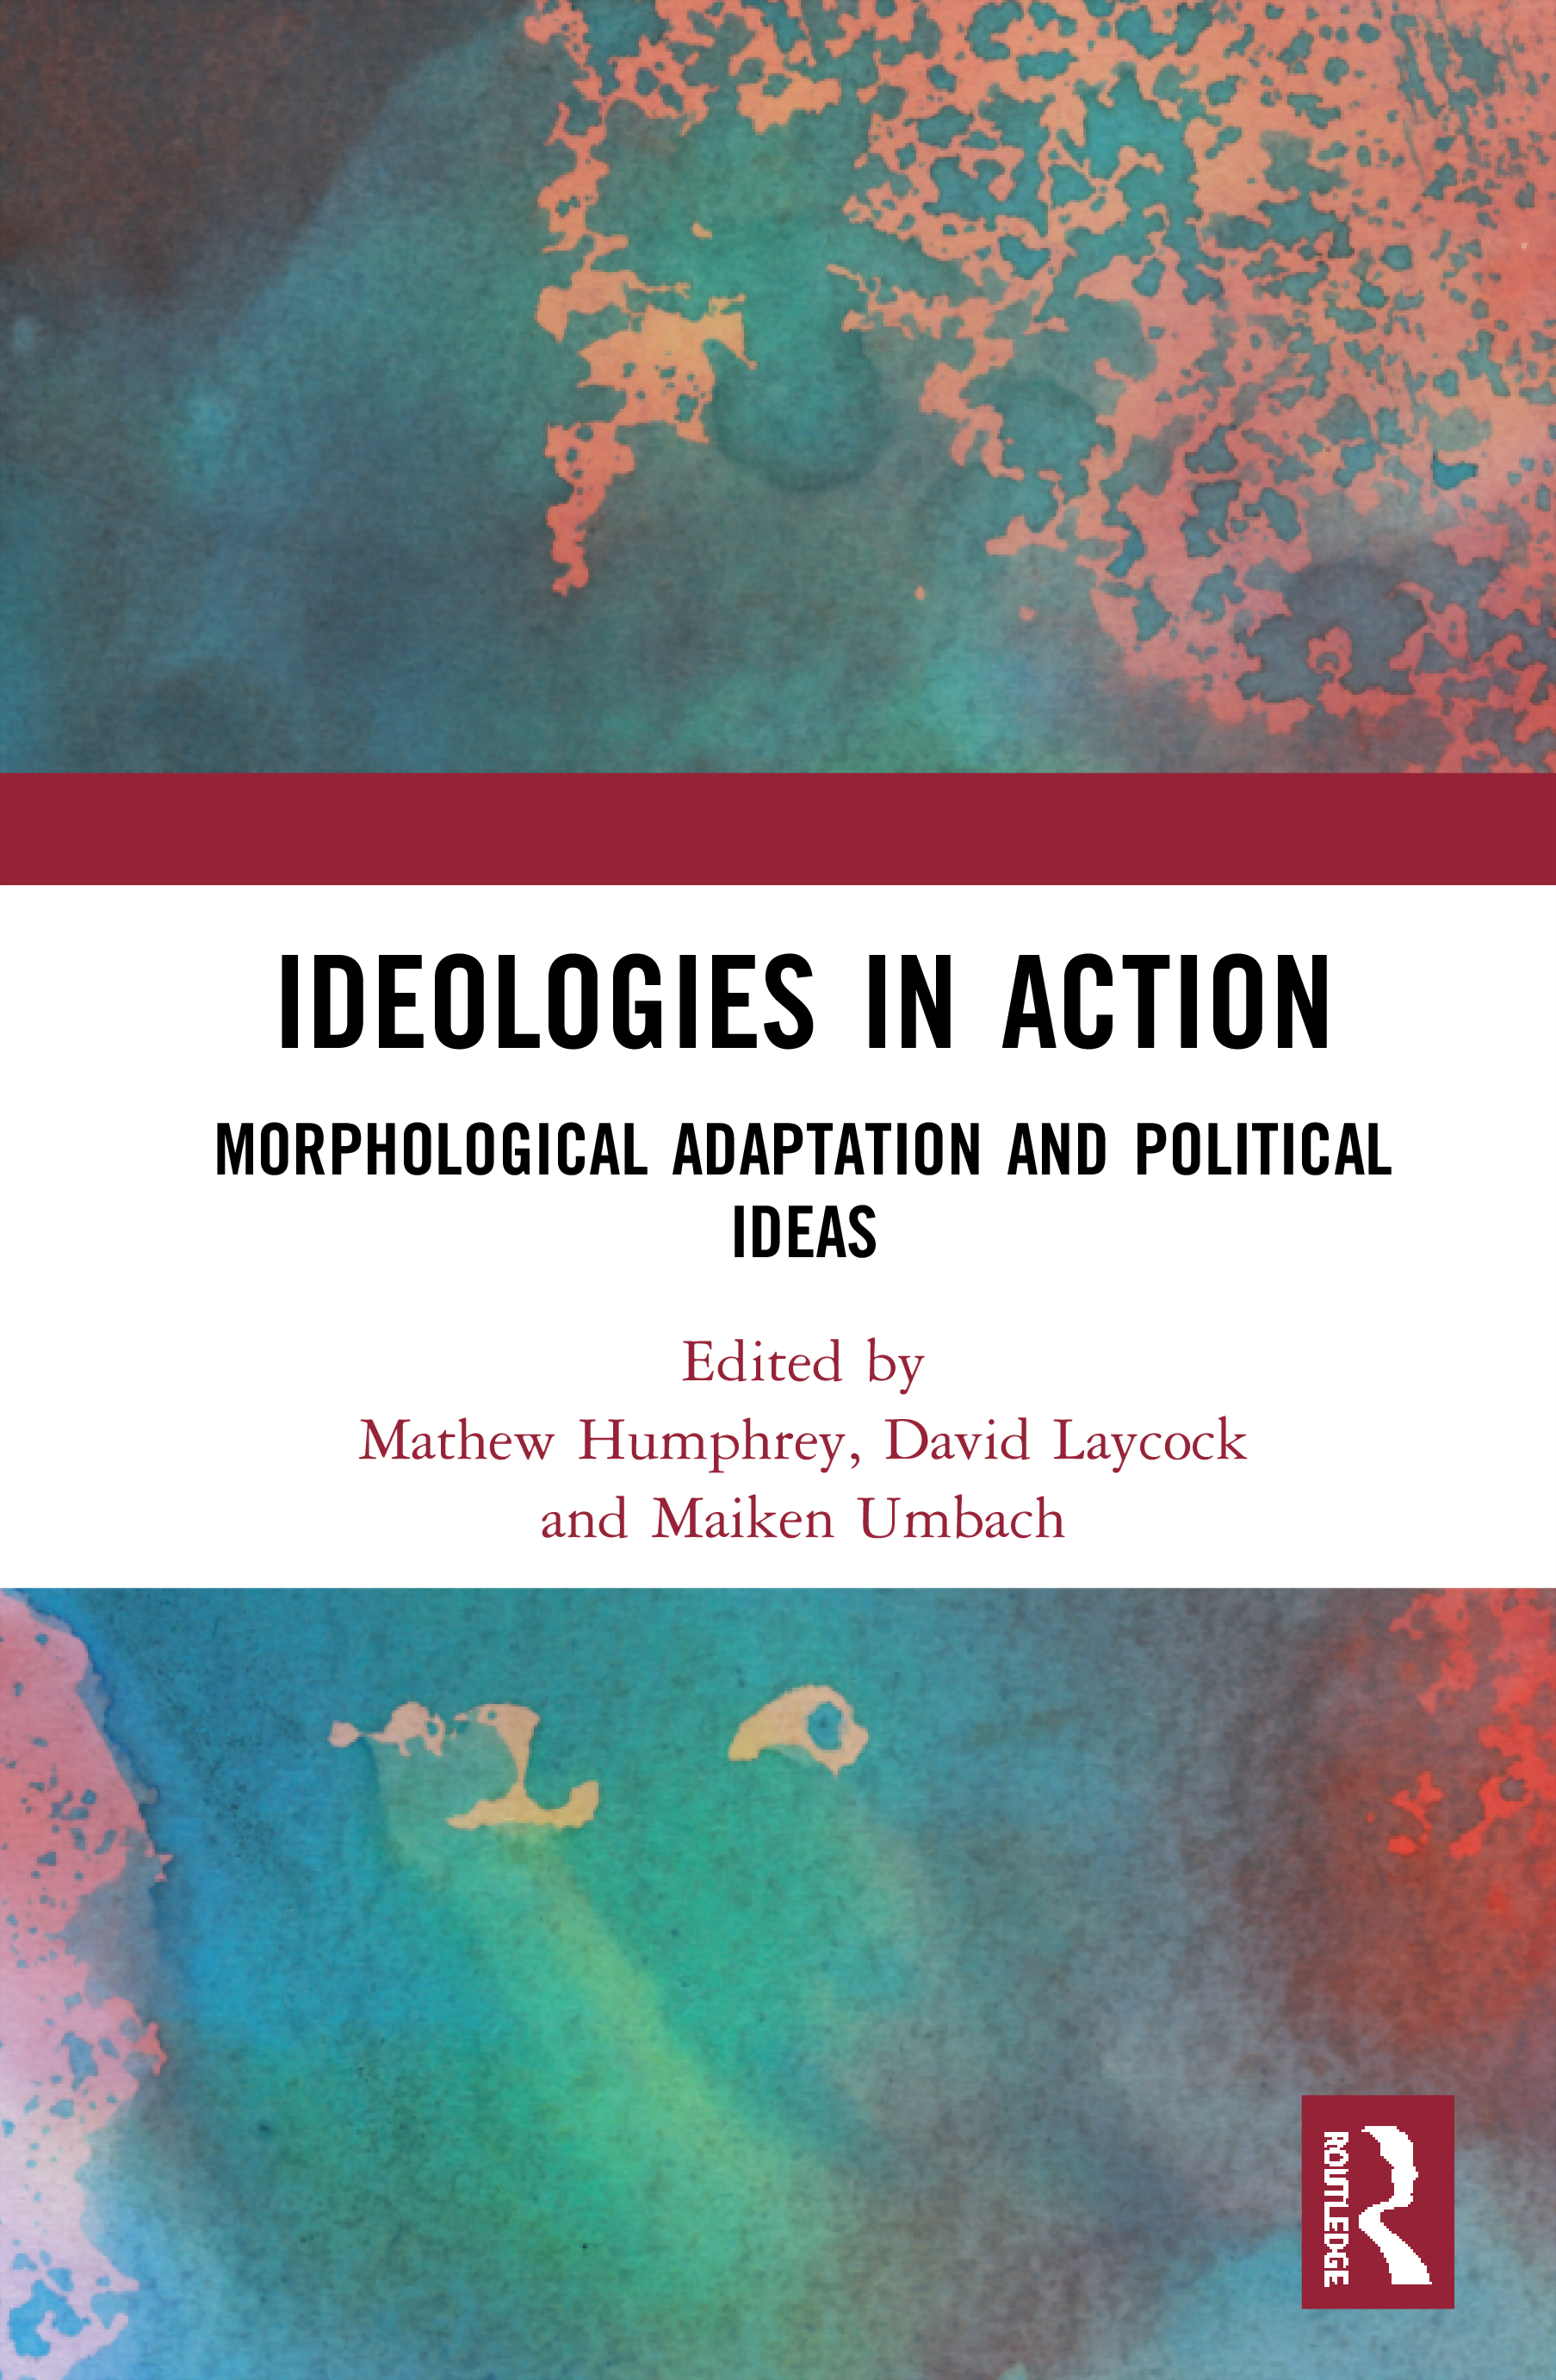 Ideologies in Action: Morphological Adaptation and Political Ideas book cover